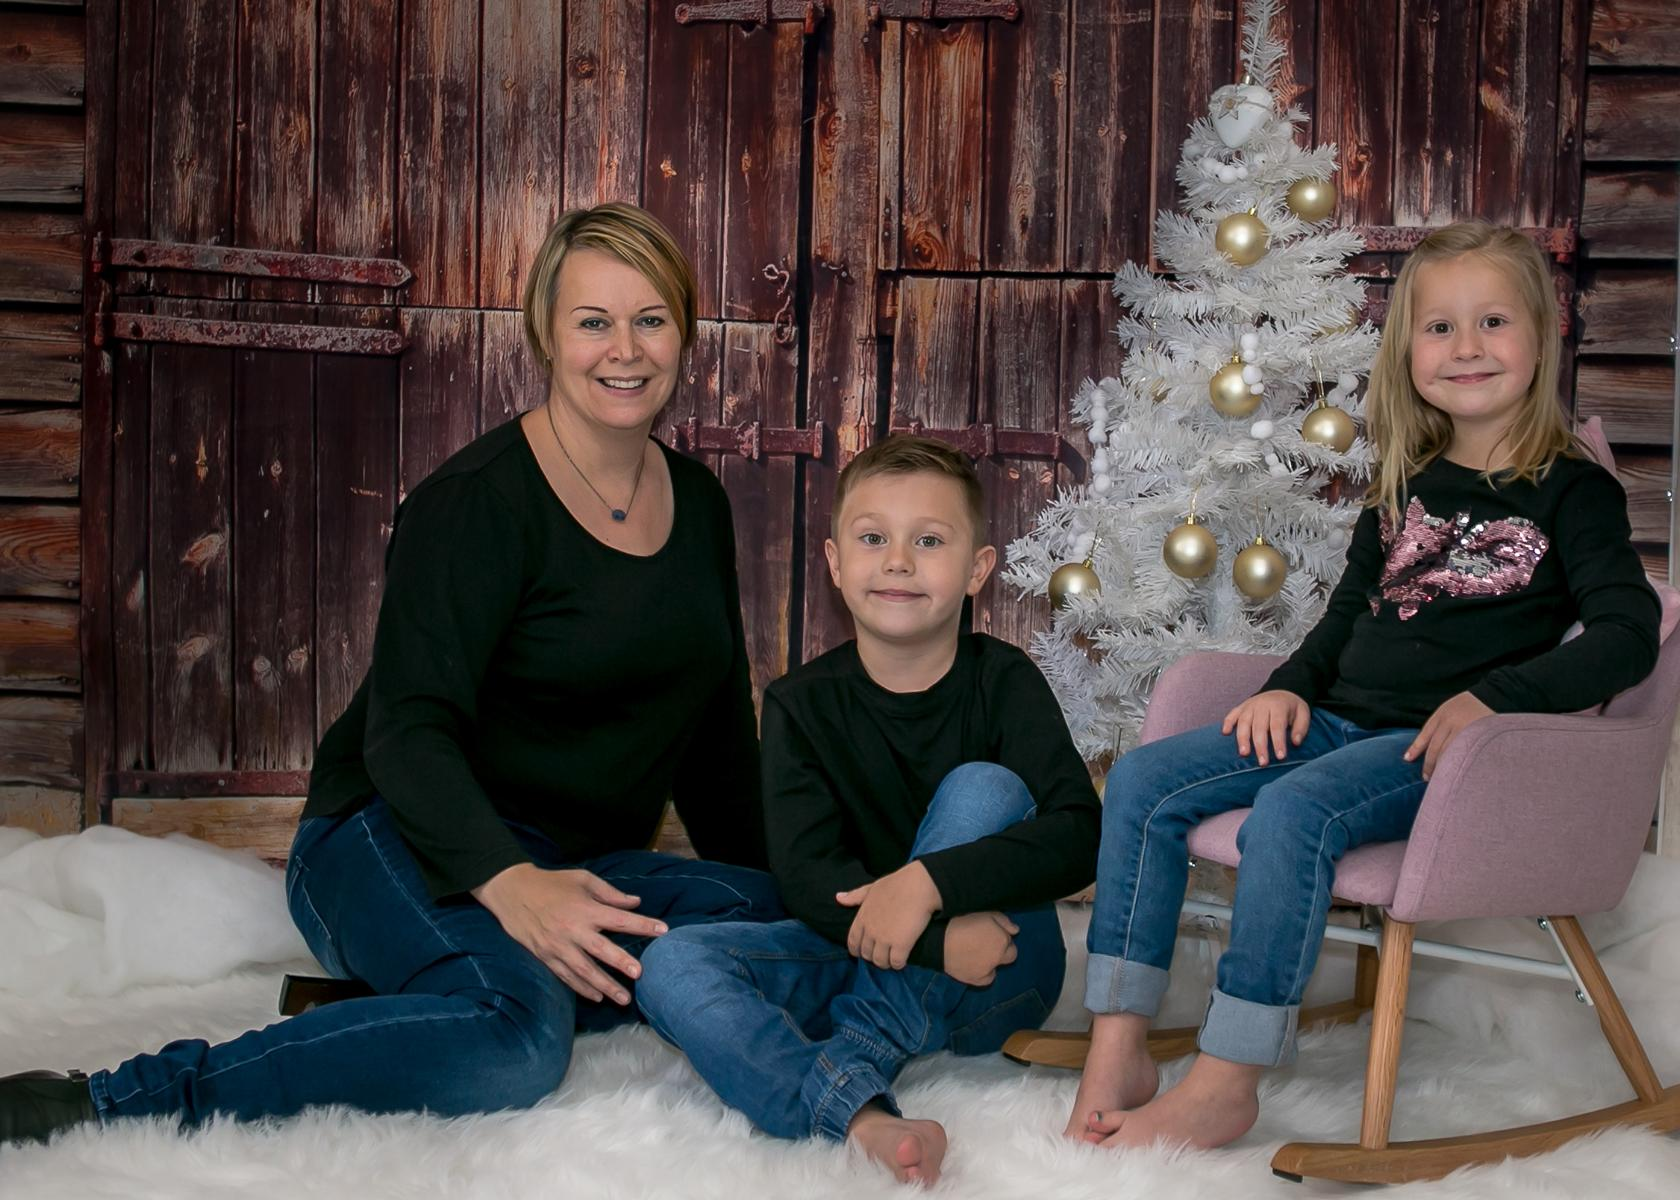 weihnachts_fotoshootings (5)